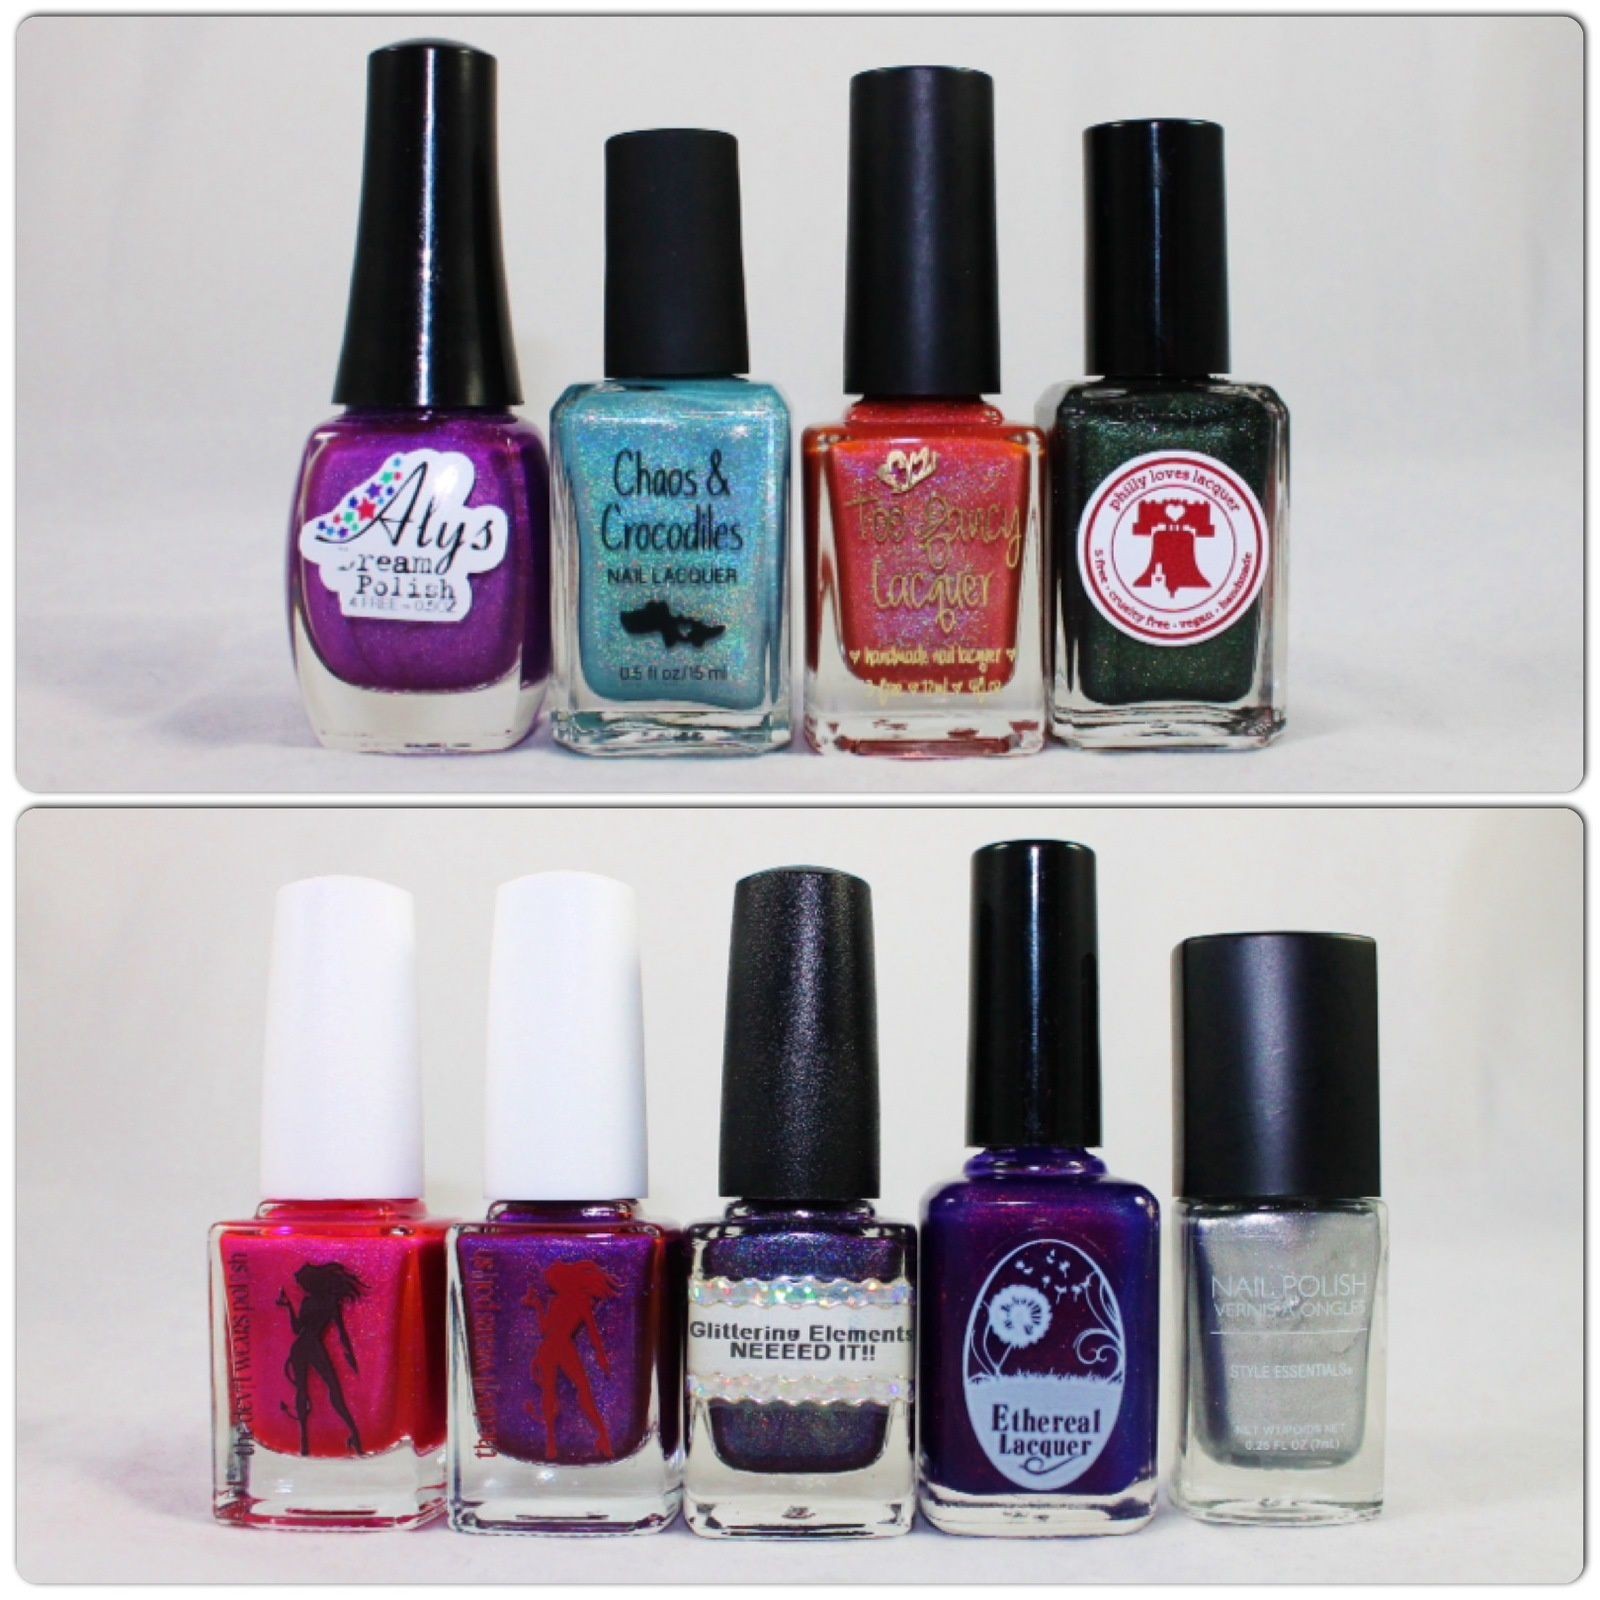 Dazzled Holograil Box Aly's Dream Polish Yuna, Chaos & Crocodiles Blue beary, Too Fancy Lacquer Mario's Attack, Philly Loves Lacquer Hero's Shade. The Devil Wears Polish Pink Panther & Dang! Glittering Elements Neeeed it!! Ethereal Lacquer Worlds Apart & Nail Polish Style Essentials Silver